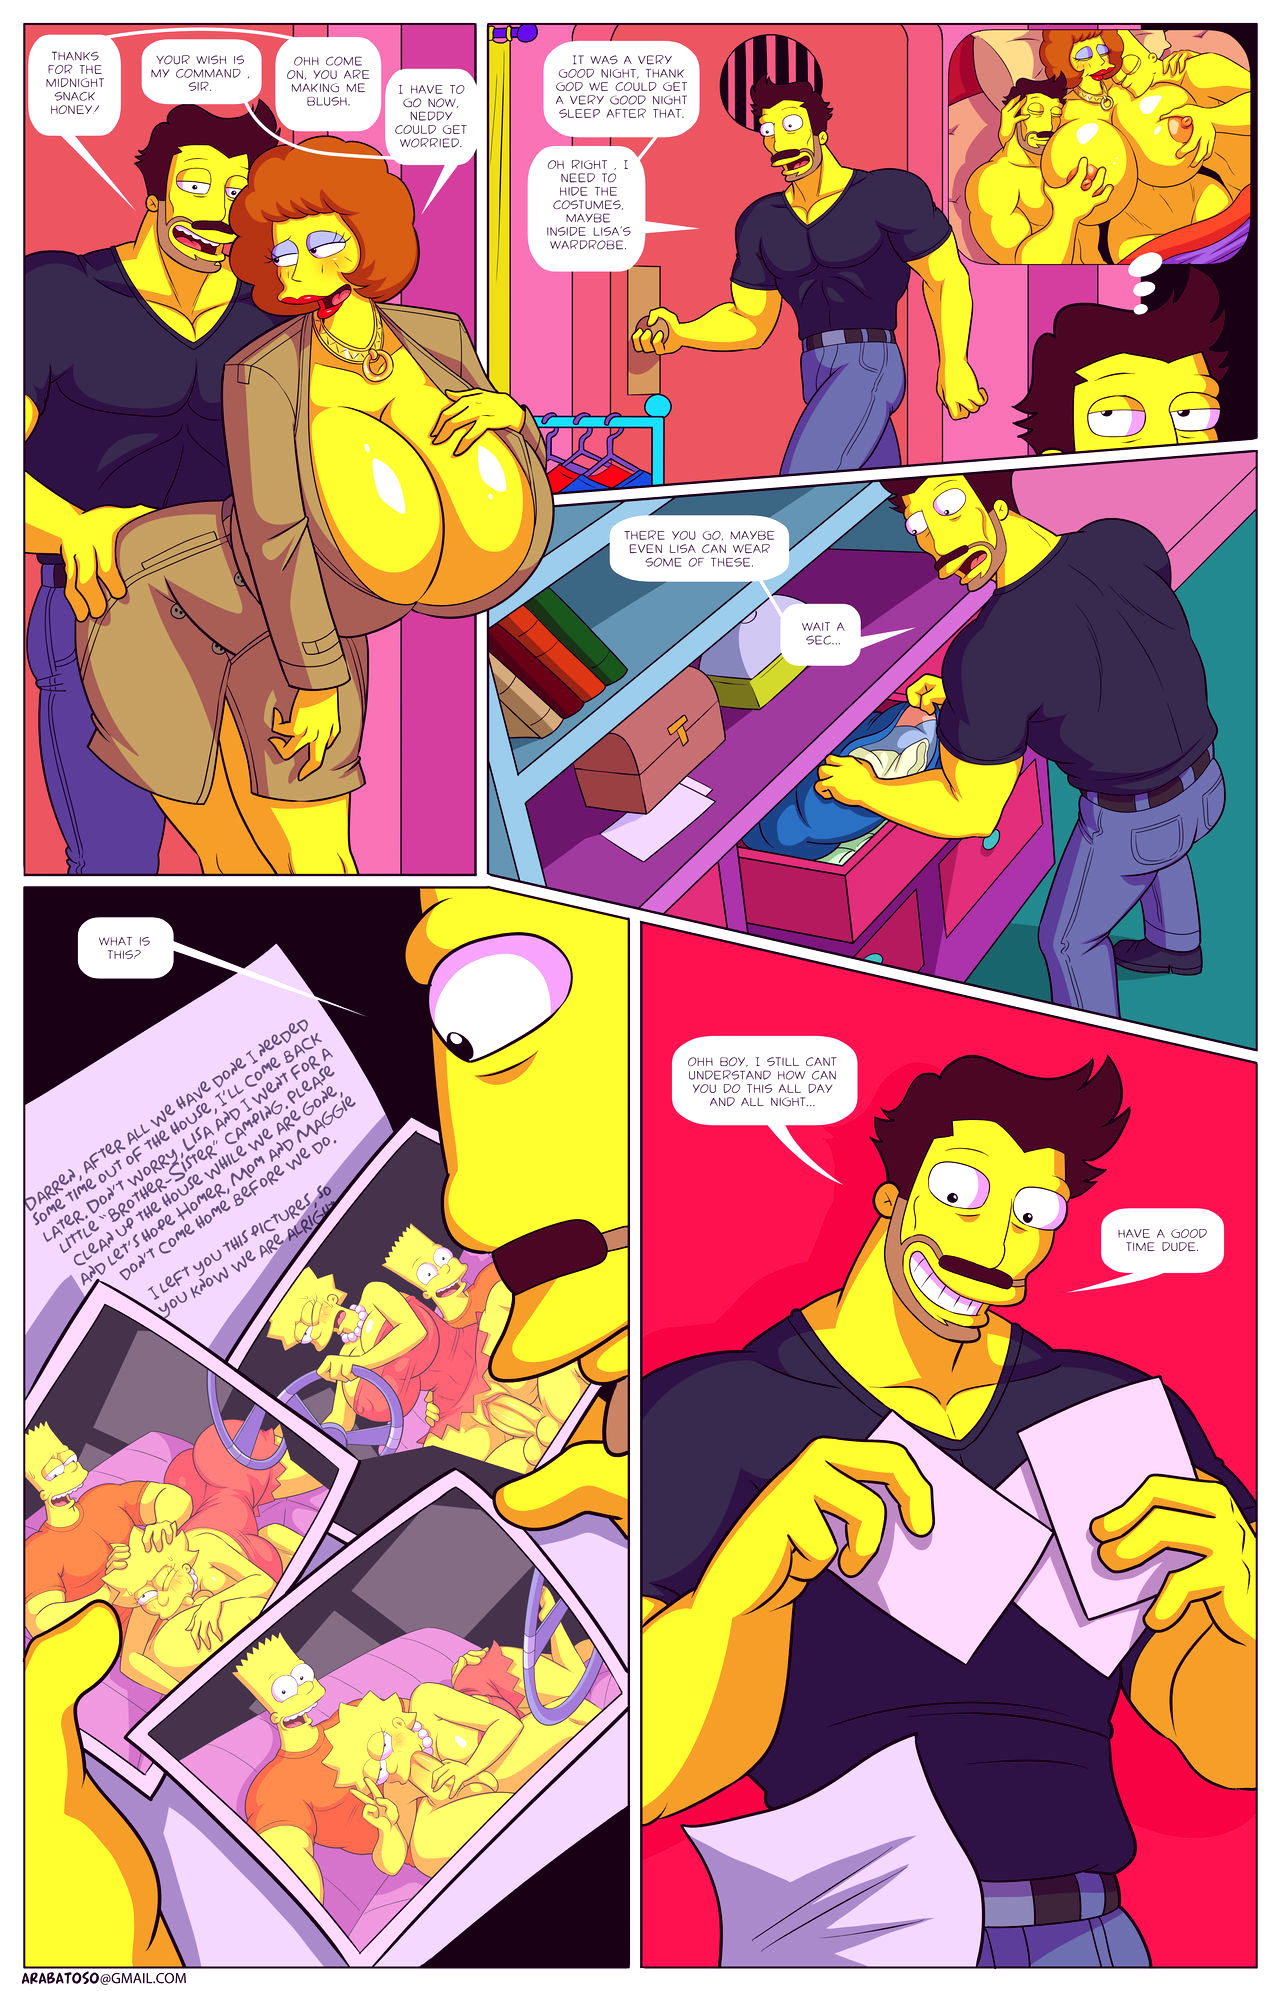 Darrens adventure or welcome to springfield porn comic picture 52